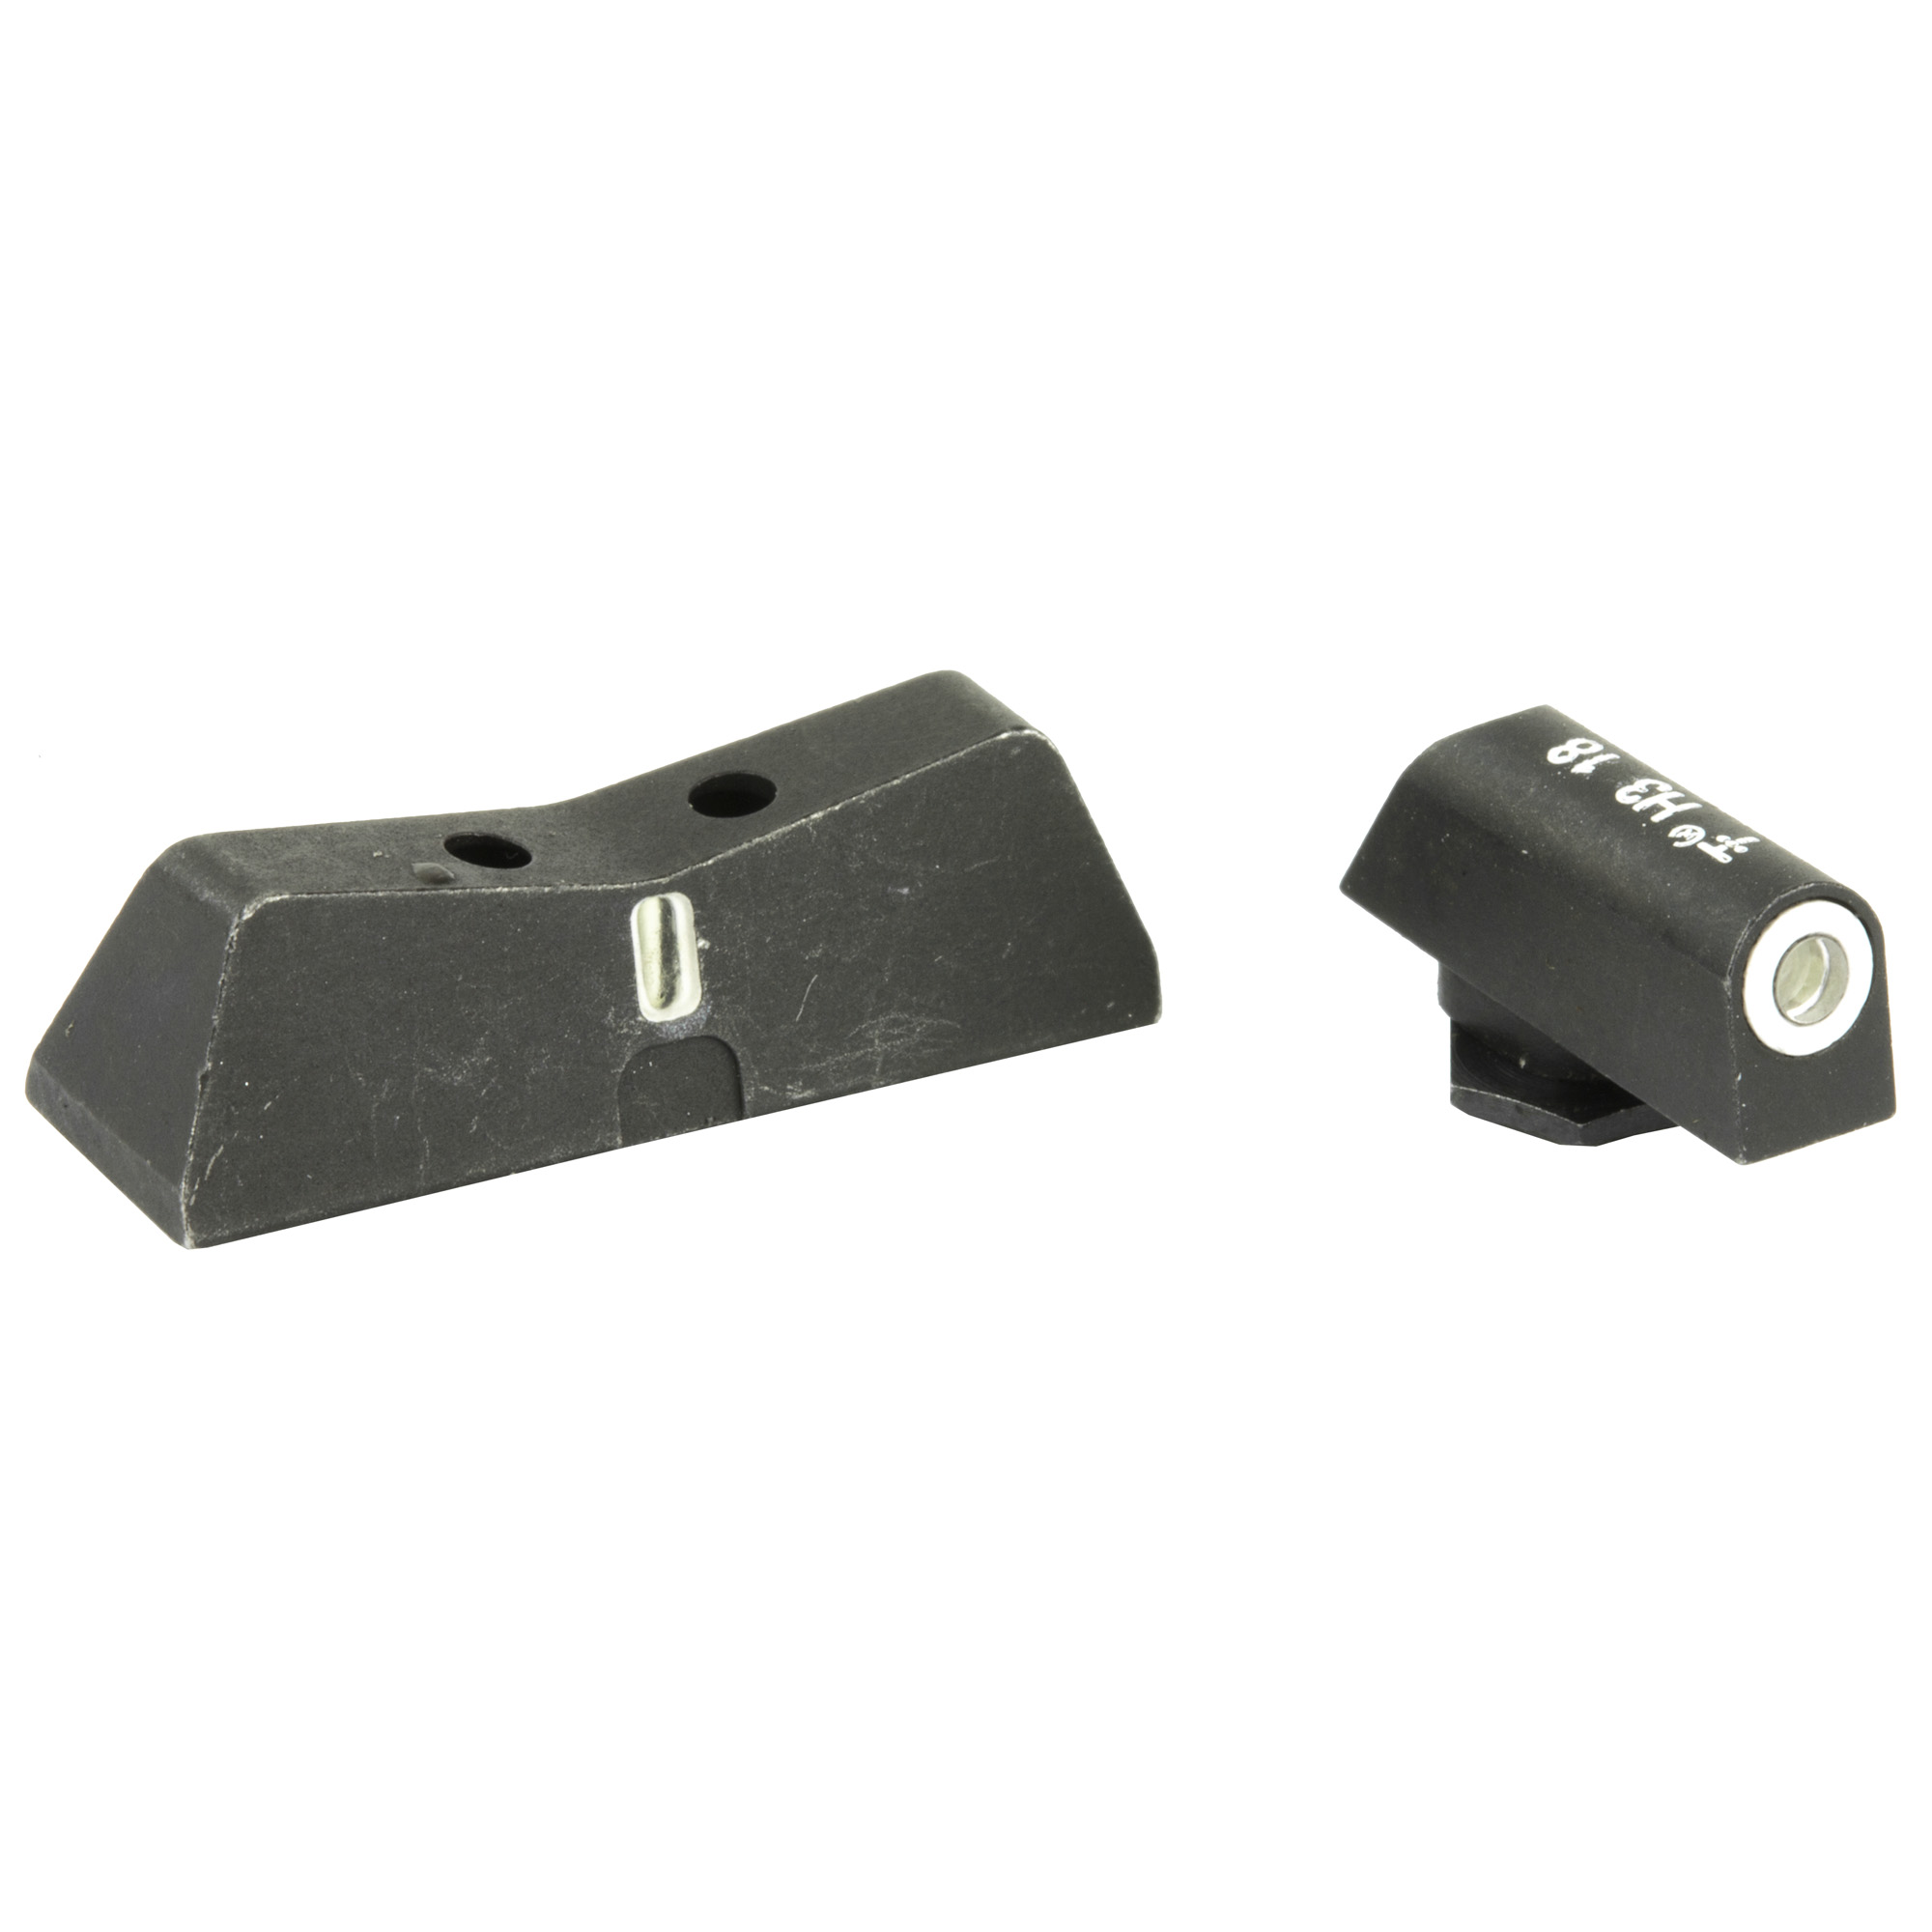 "The XS DXT Standard Dot night sight is a superior defensive sight set. Fits Glock models 17"" 19"" 22"" 23"" 24"" 26"" 27"" 31"" 32"" 33"" 34"" 35"" & 36. Precision machined in Fort Worth"" TX"" XS Sights feature a Standard Dot Tritium front sight and express rear sight with a vertical tritium stripe for fast sight acquisition in all light conditions. Standard Dot is larger than most fronts to be seen under stress"" but covers less of the target than the Big Dot. White dot reflects ambient light for visibility in low light. Shallow V-Notch rear provides an unobstructed view of the front sight"" along with a greater field of view down range"" especially when moving and shooting. Day-Light"" Half-Light"" or Low-Light"" just ""dot the i"" and center the dot over your target within 15 yards. Outside Diameter Standard Dot 0.140""; fits in common holsters. Installation might require filing to fit sight to dovetail"" do not use a sight press/pusher tool."